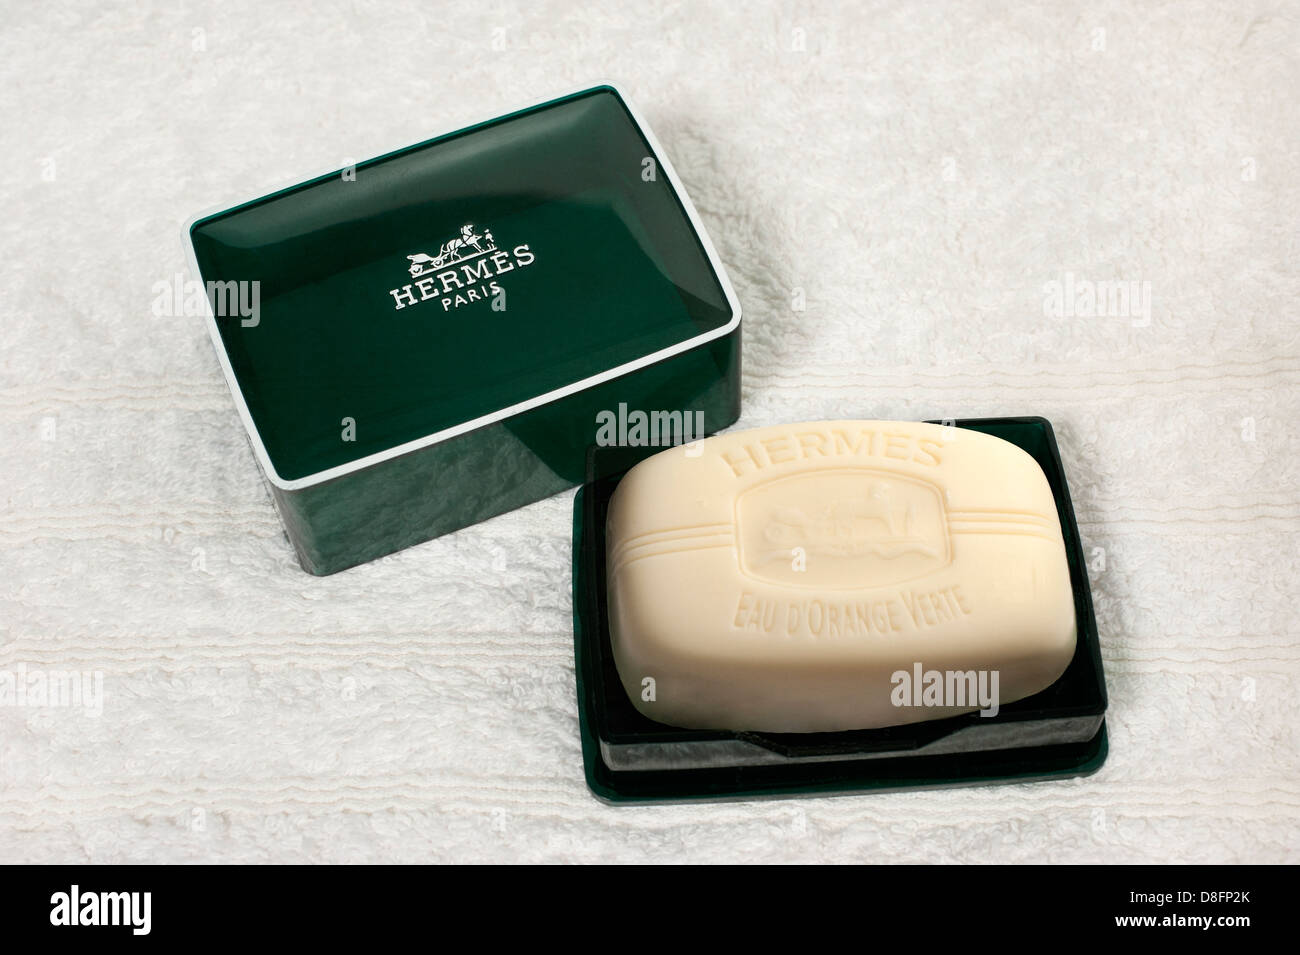 Luxury bar of perfumed hand soap by Hermes on a white towel - Stock Image